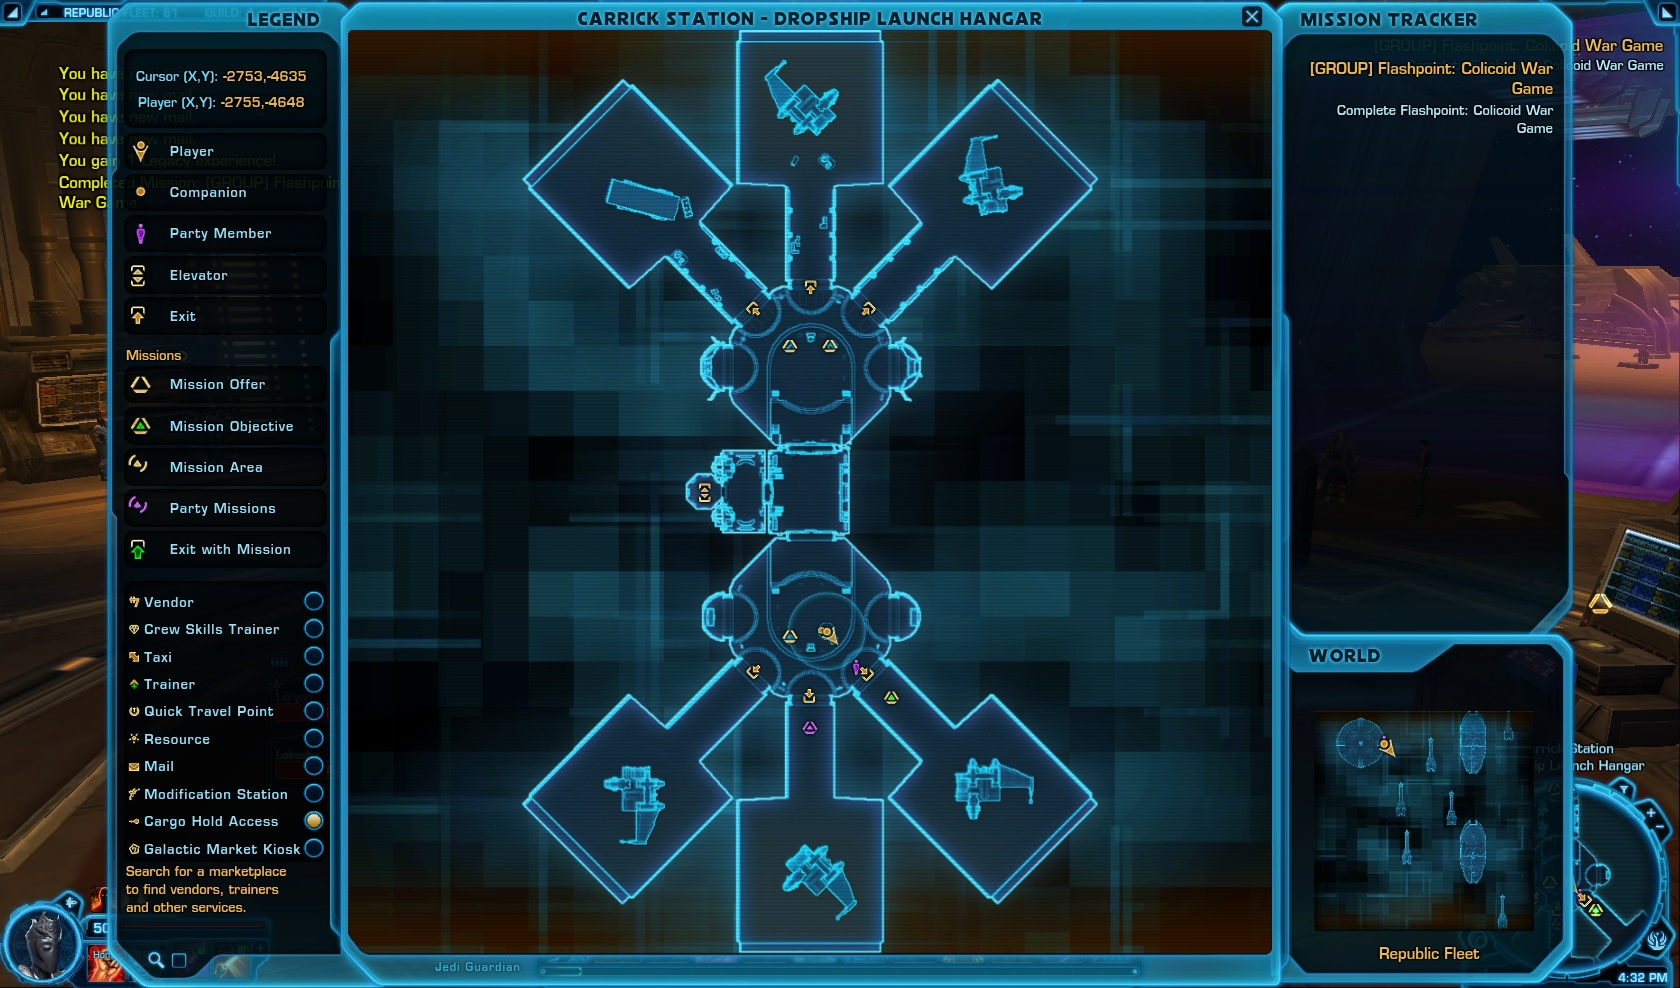 Colicoid War Game Map